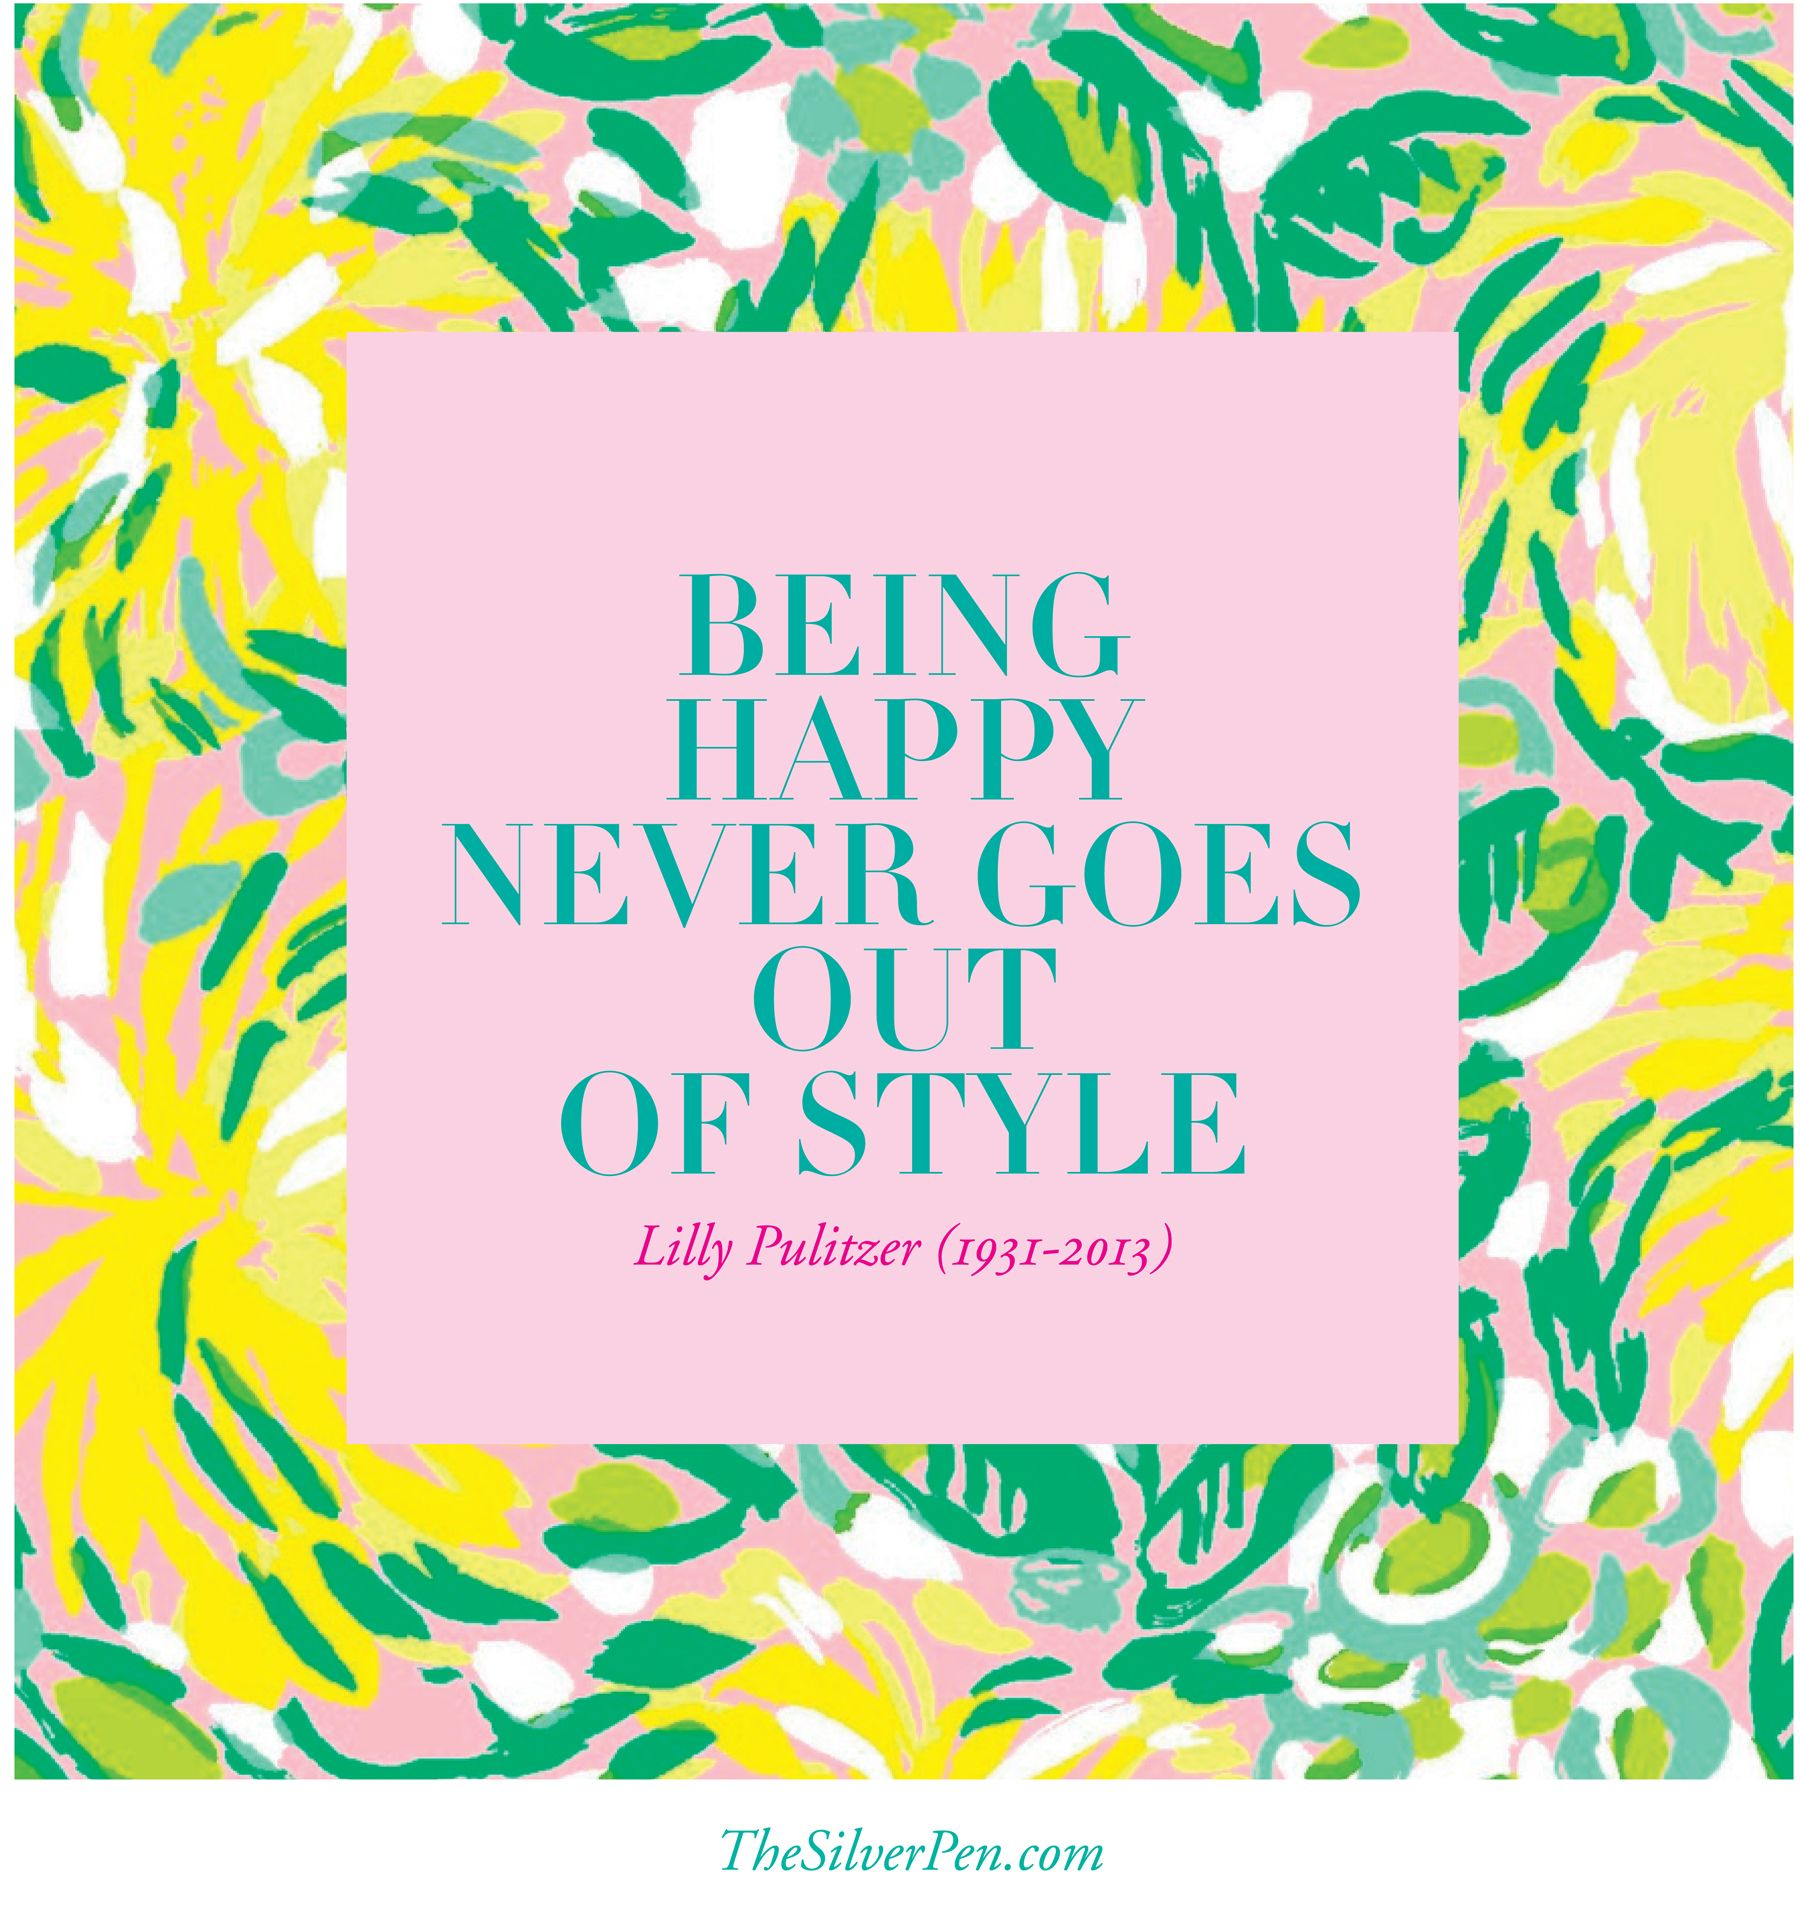 Lilly Pulitzer Quotes Lilly Limes Lilly Pulitzer Quotes  Ahh To Live The Lilly Life